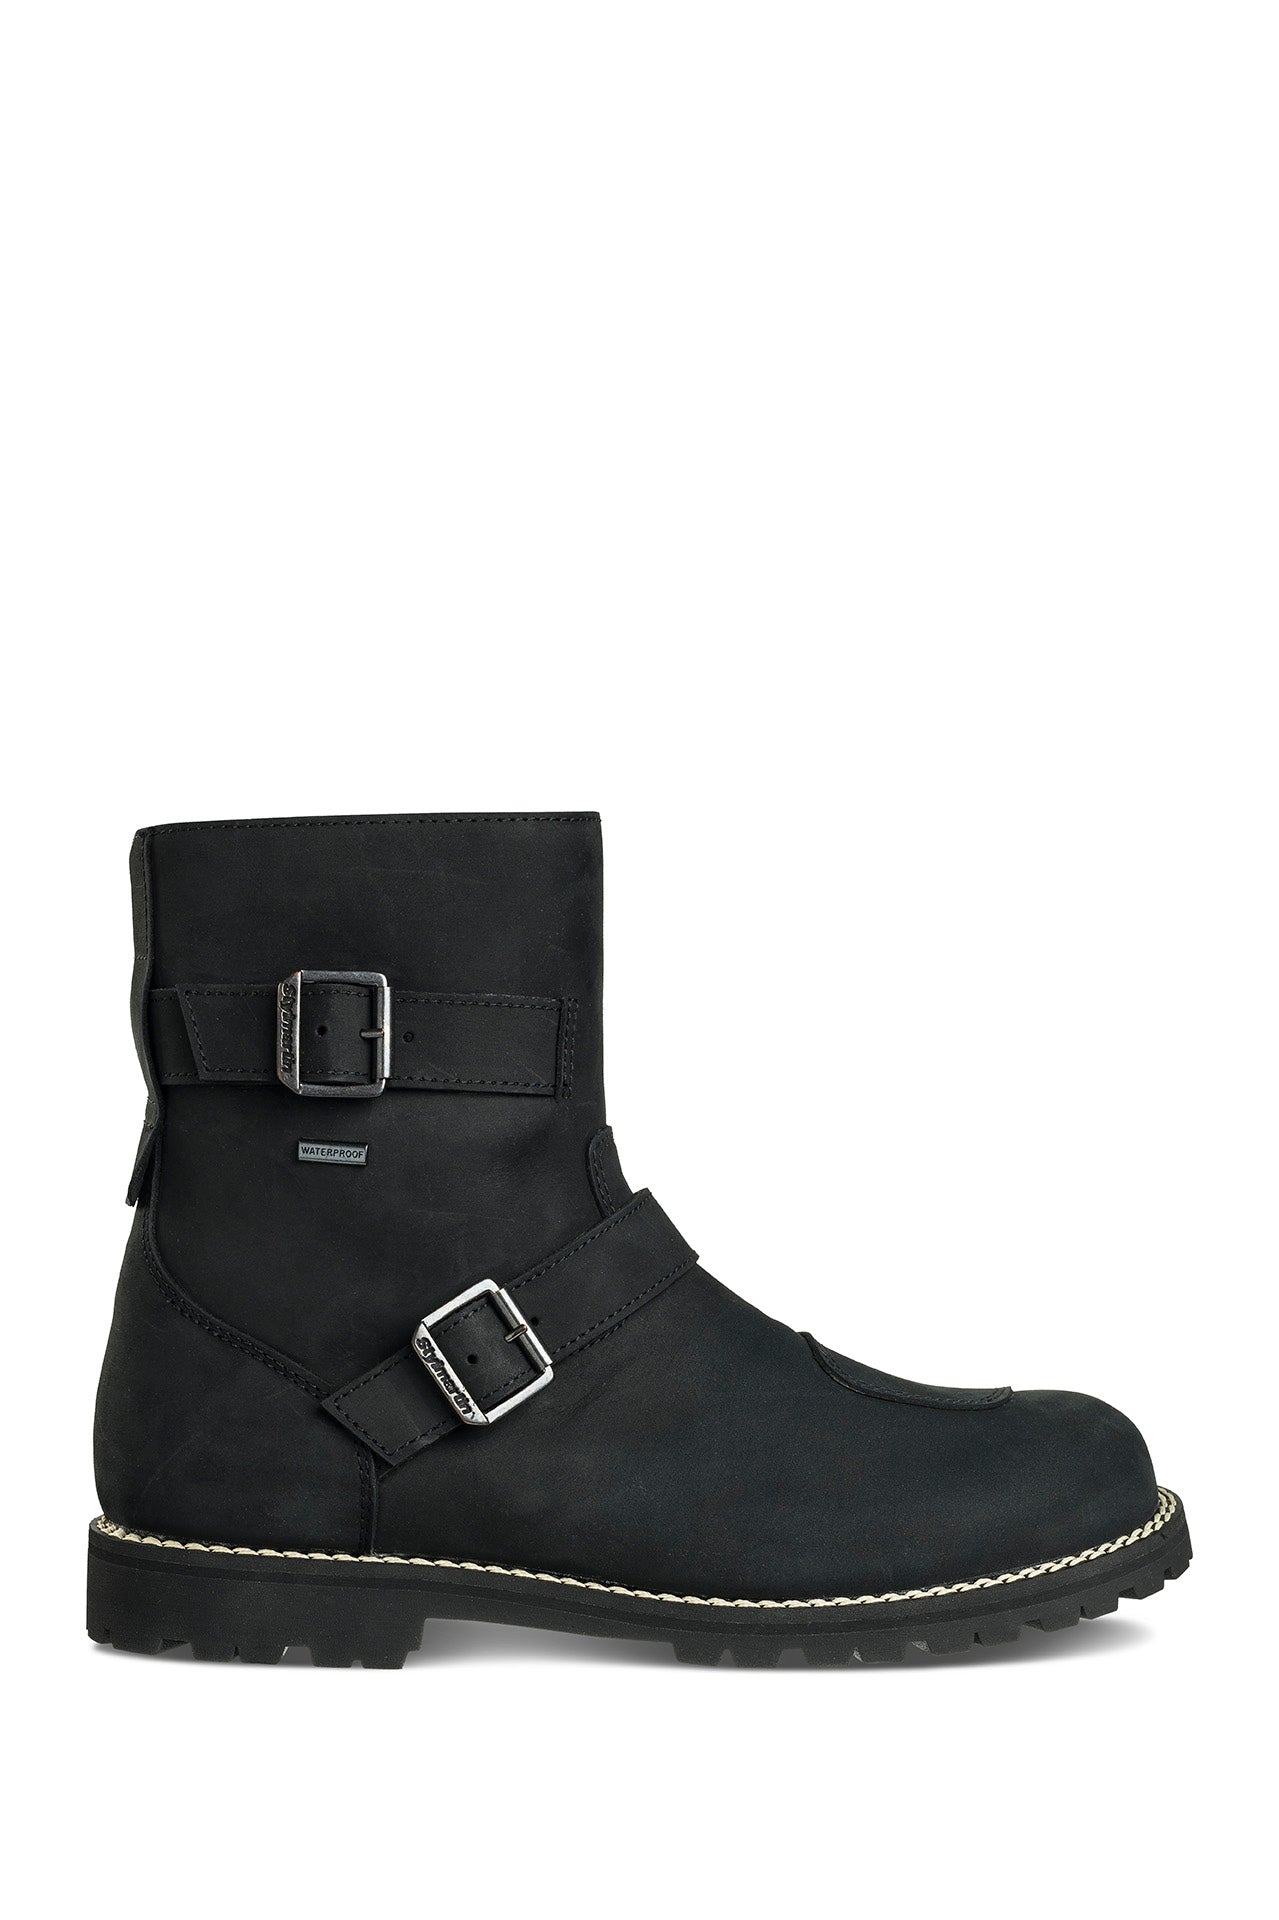 Stylmartin Legend Mid WP Touring in Black